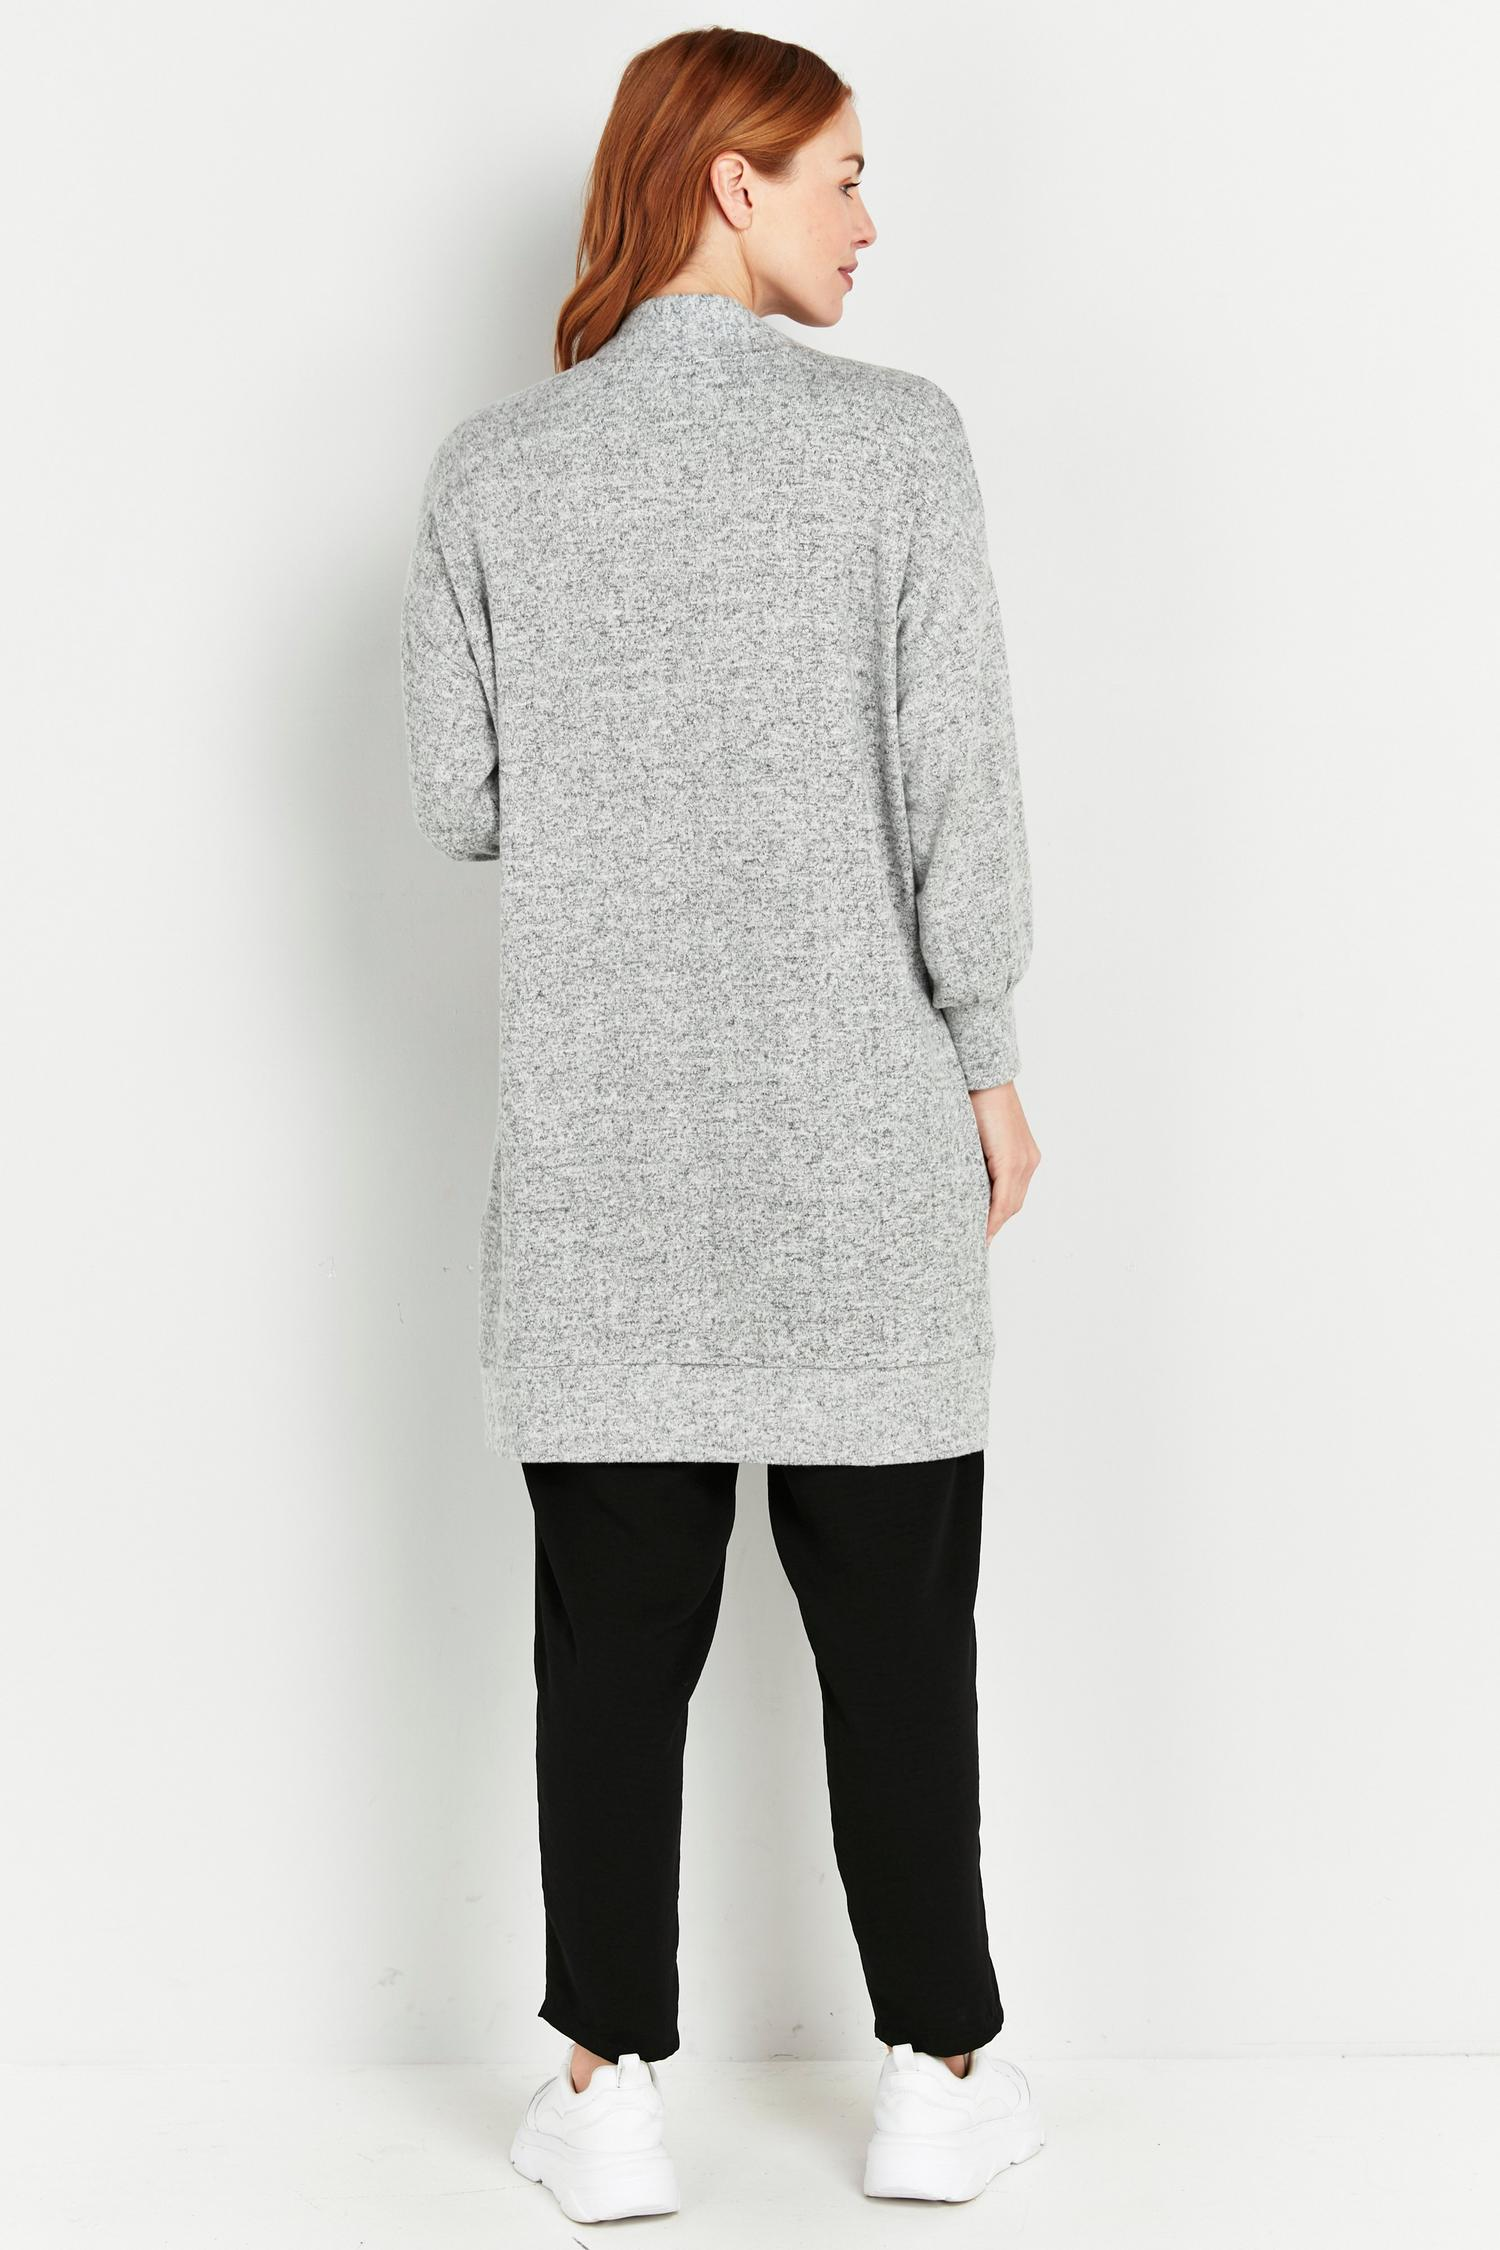 131 PETITE Grey Soft Relaxed Longline Cardigan image number 2